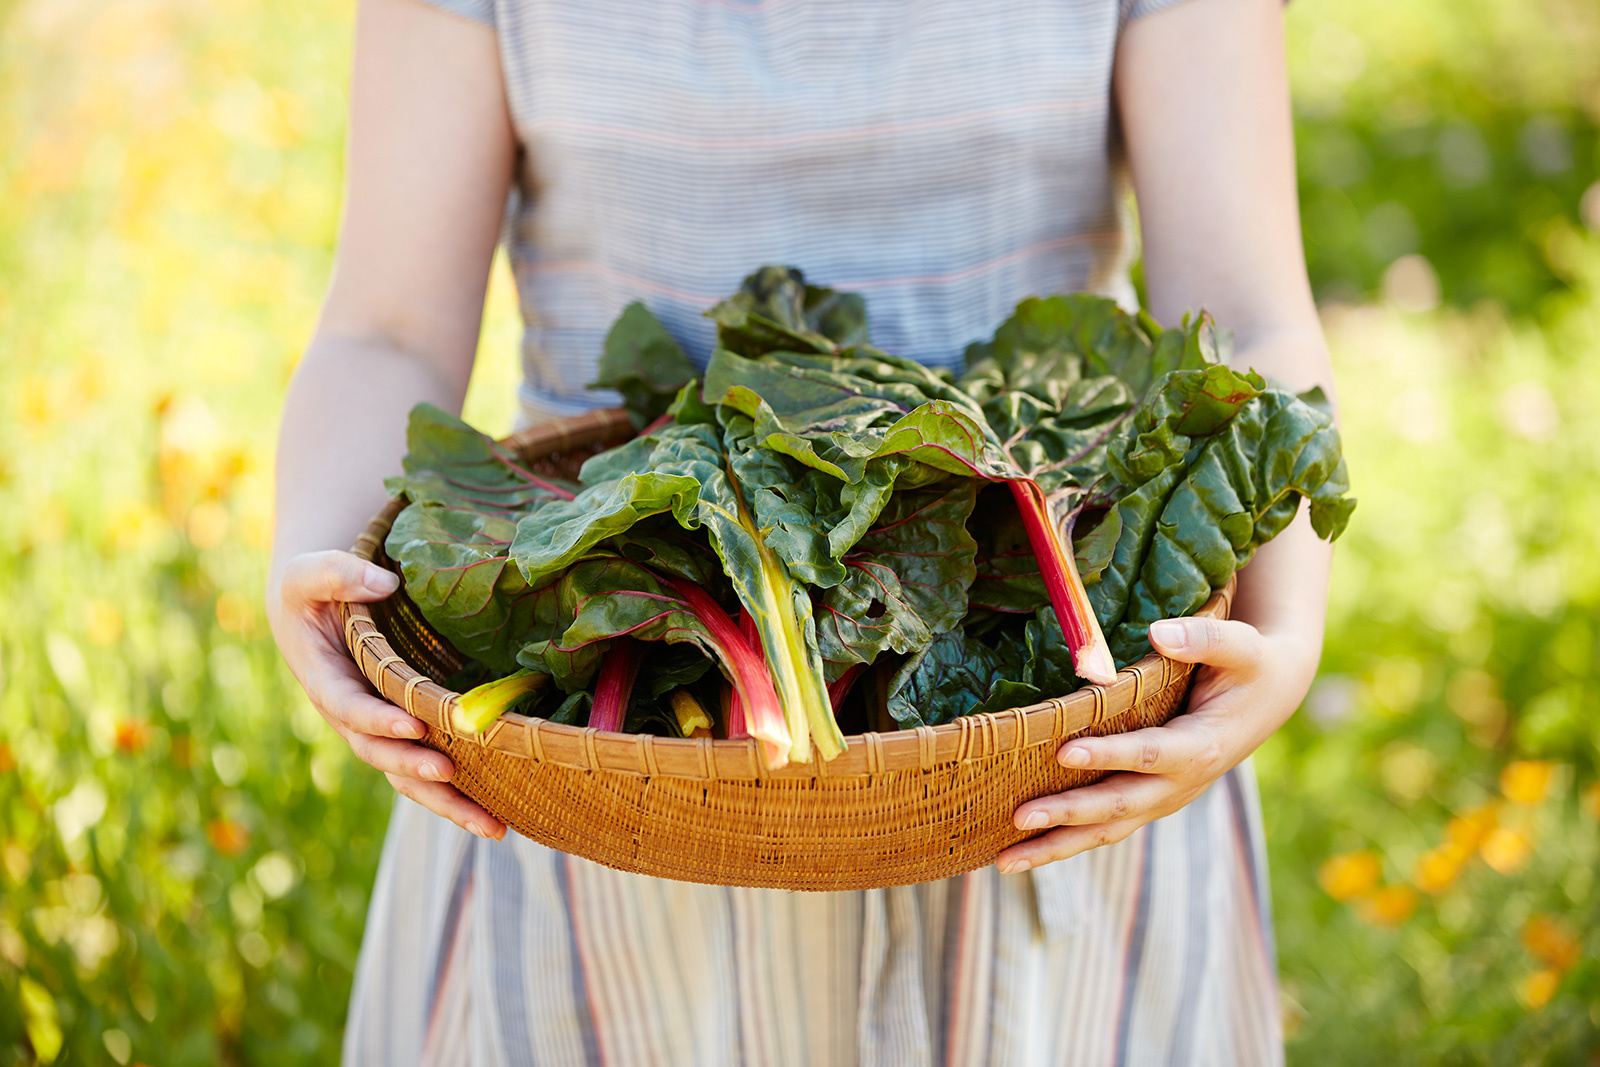 Holding chard at farm  | Trinette+Chris Photographers